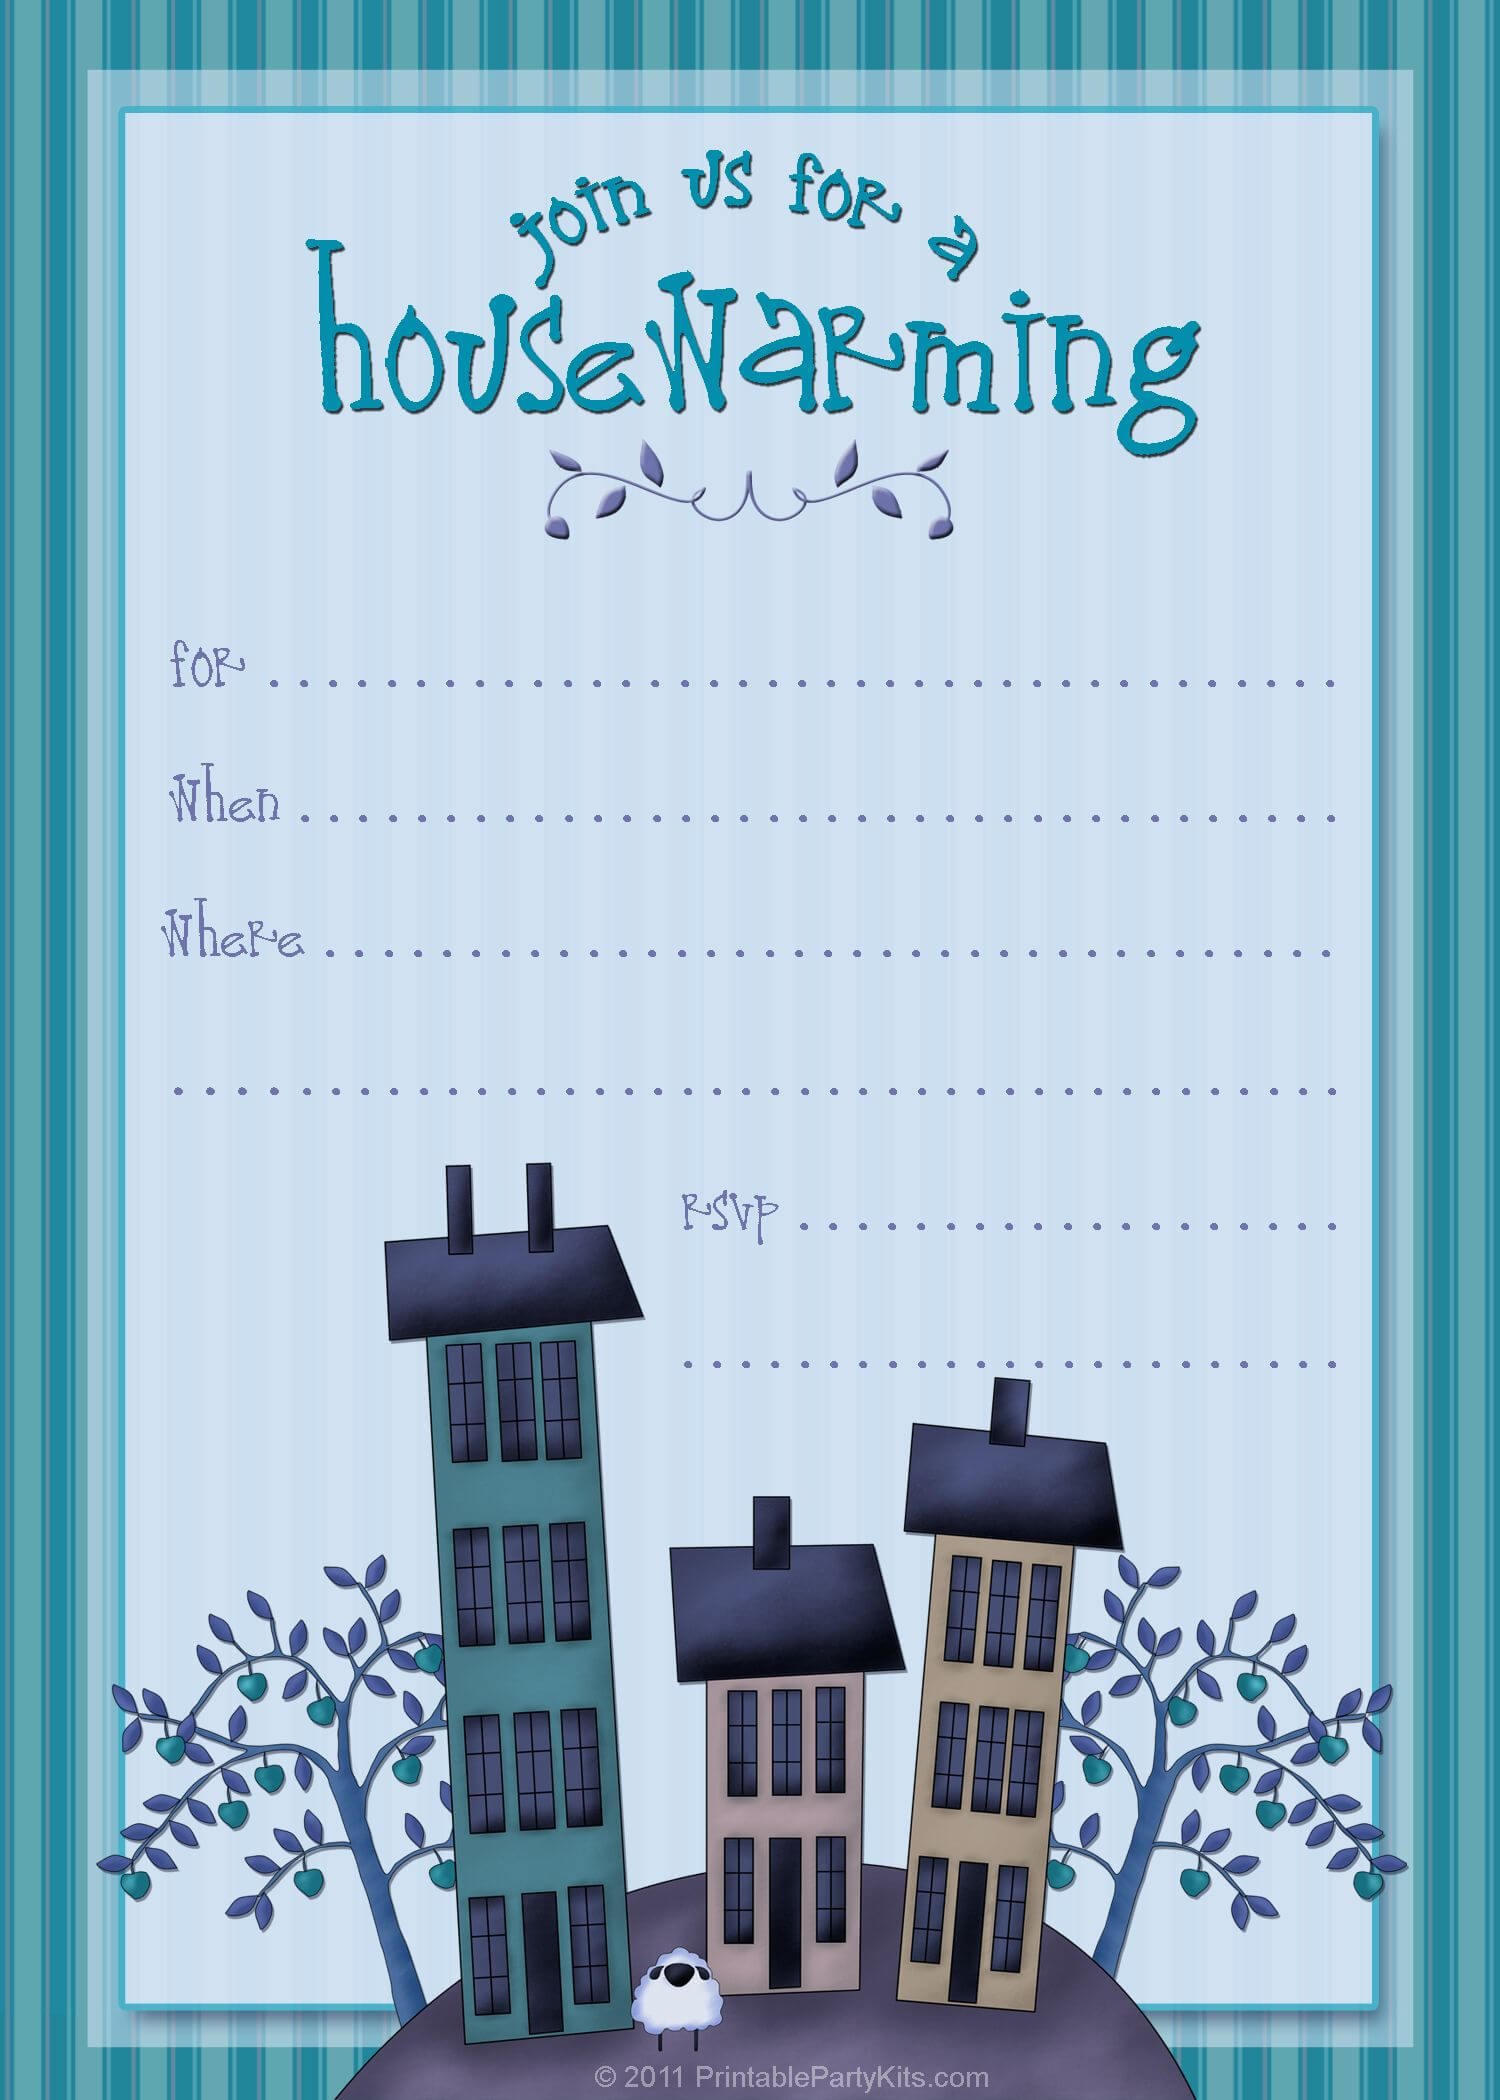 Housewarming Invite Template | Housewarming Invitation in Free Housewarming Invitation Card Template